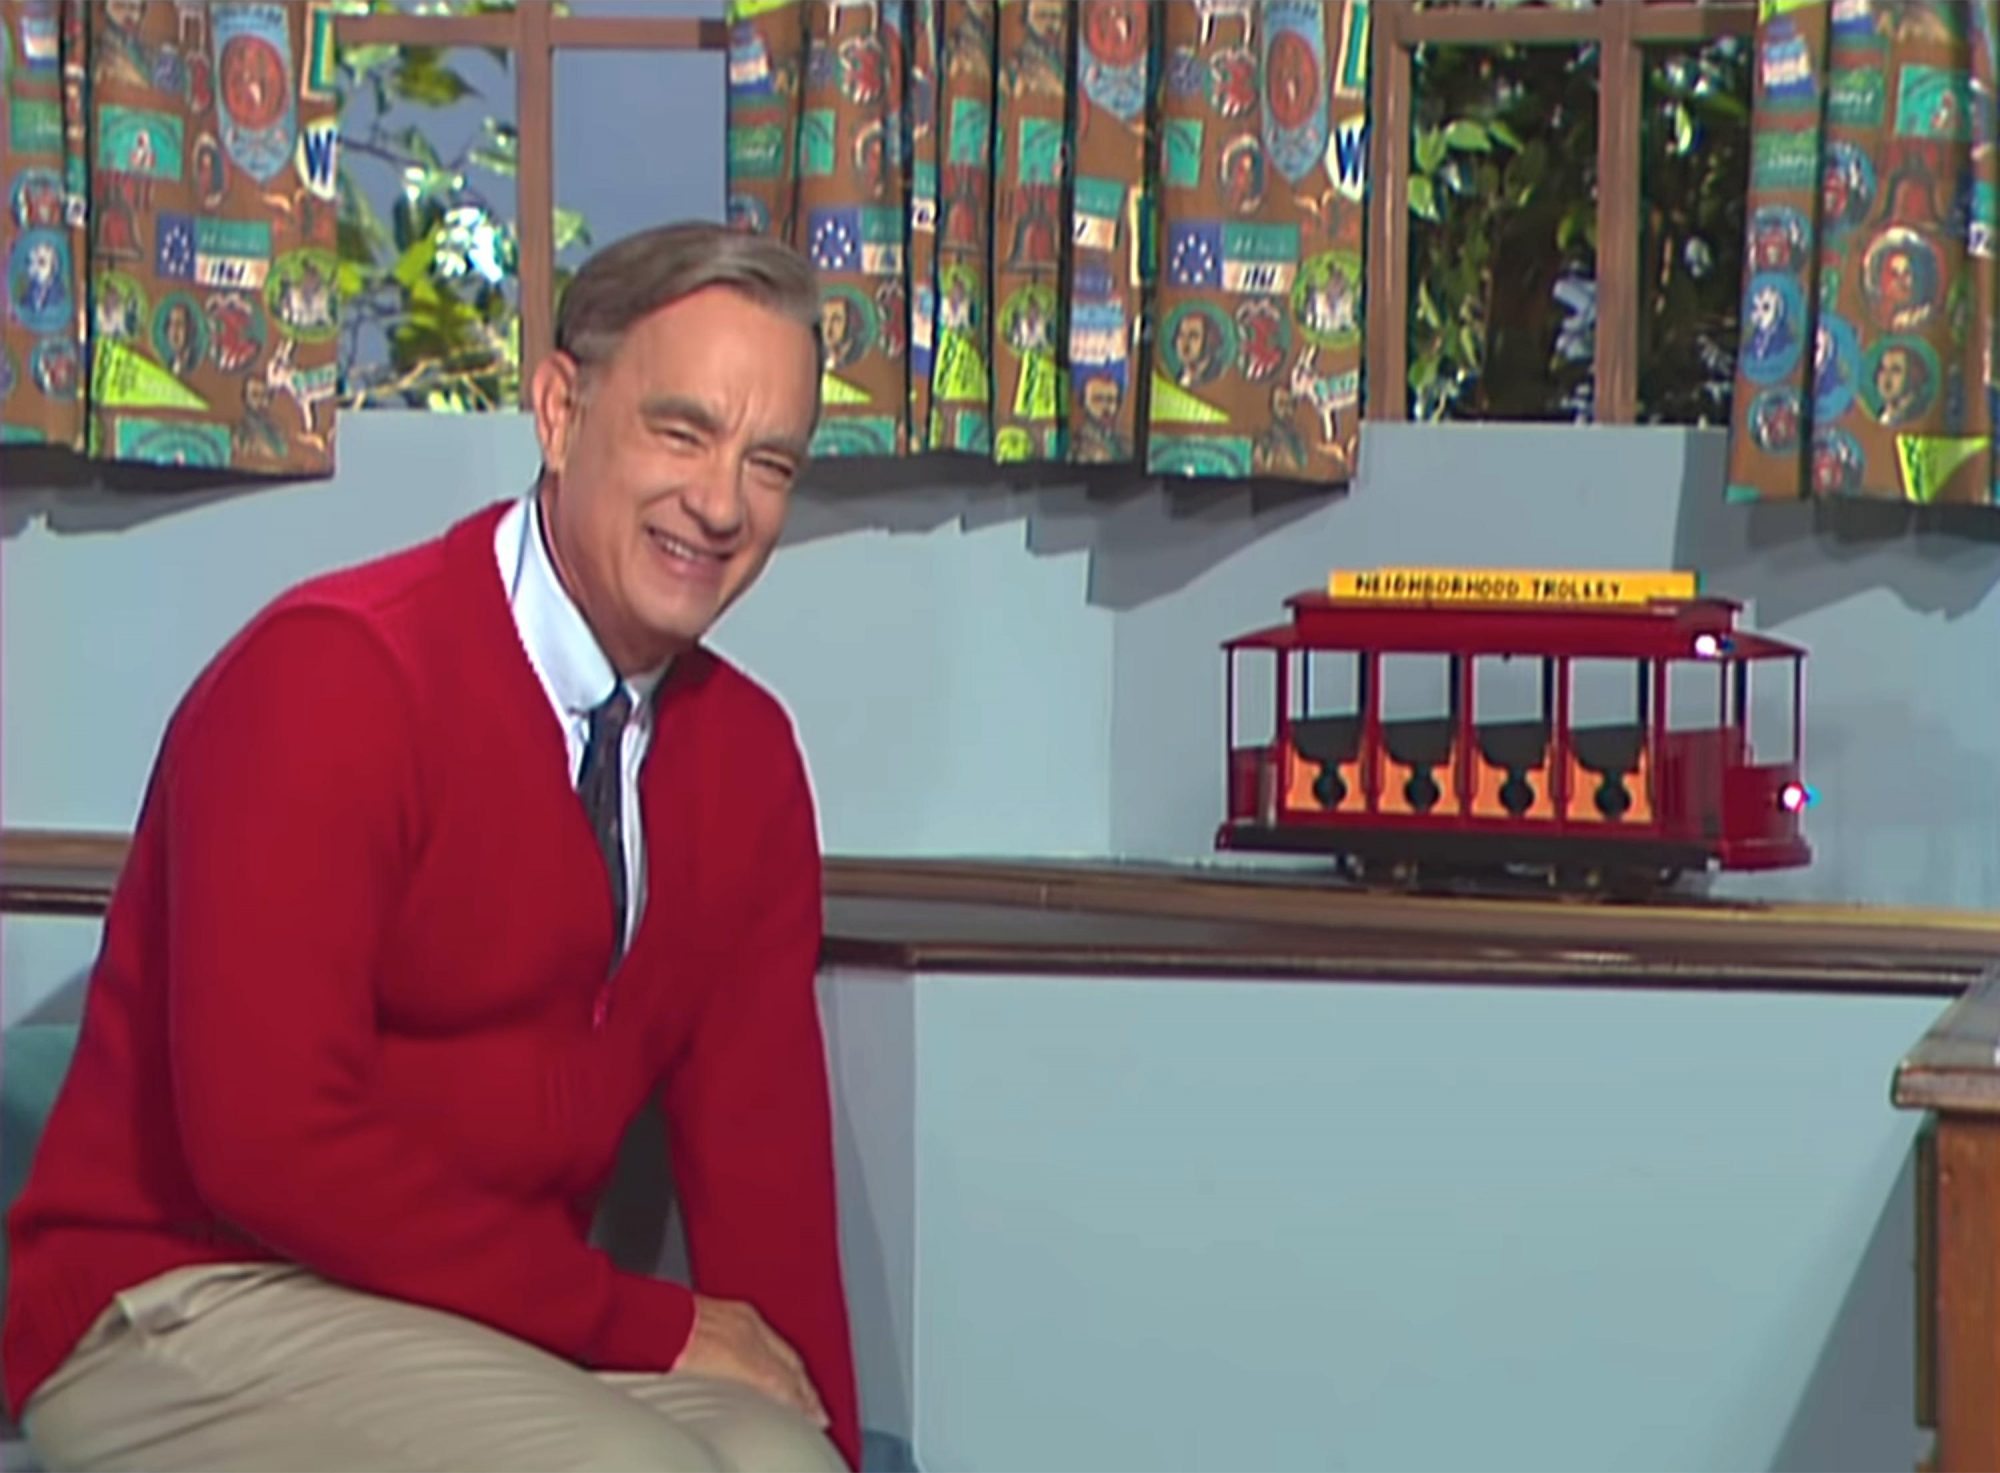 Tom Hanks leads Mister Rogers sing-along at 'A Beautiful Day in the Neighborhood' premiere